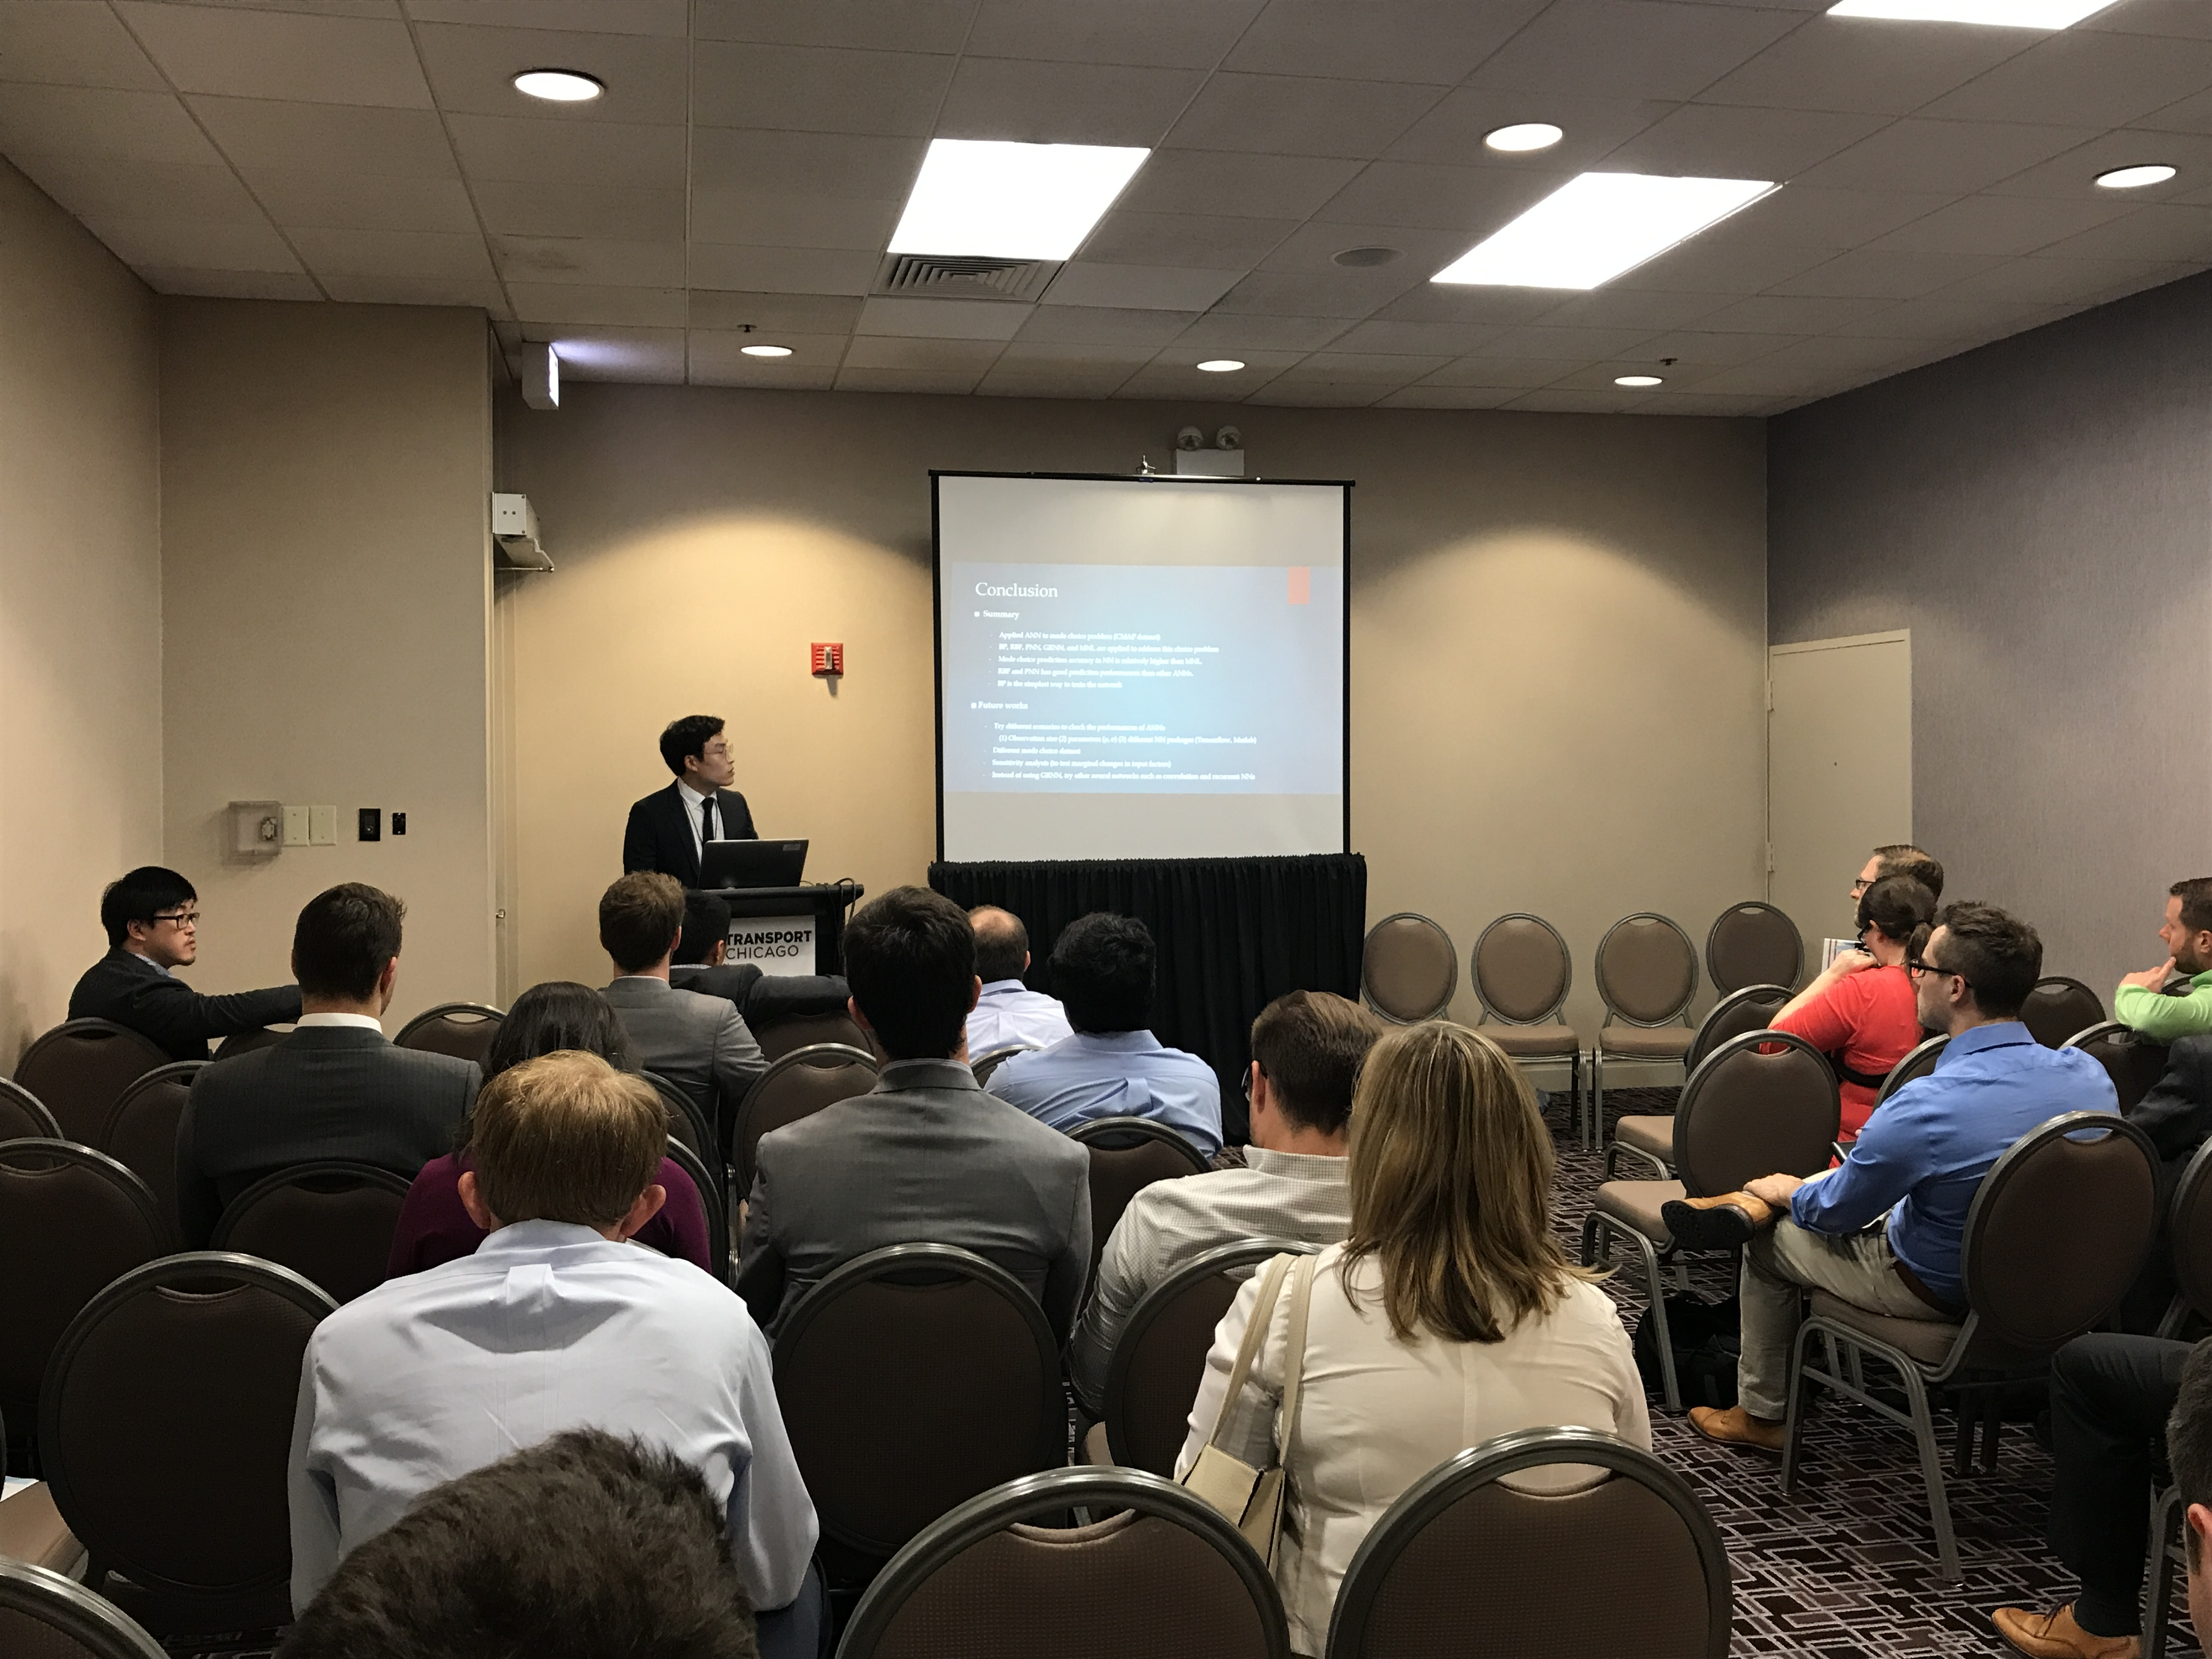 Presentation at Transport Chicago 2017 by UIC-ITE Member.